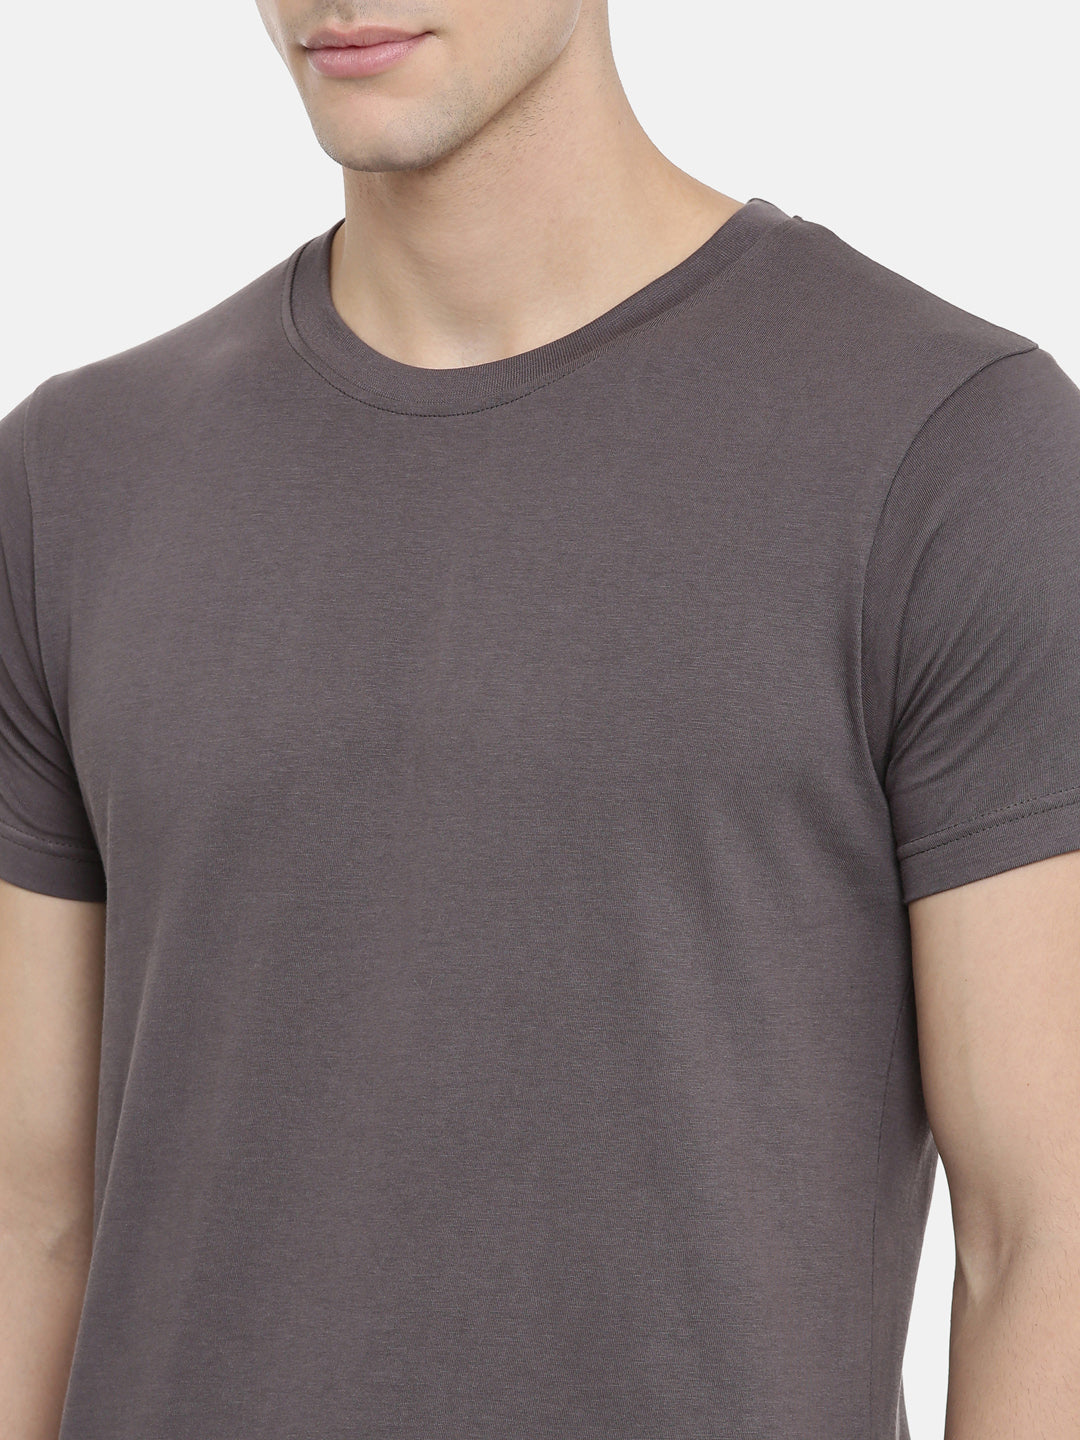 Grey Half Sleeve T-shirt Baromin